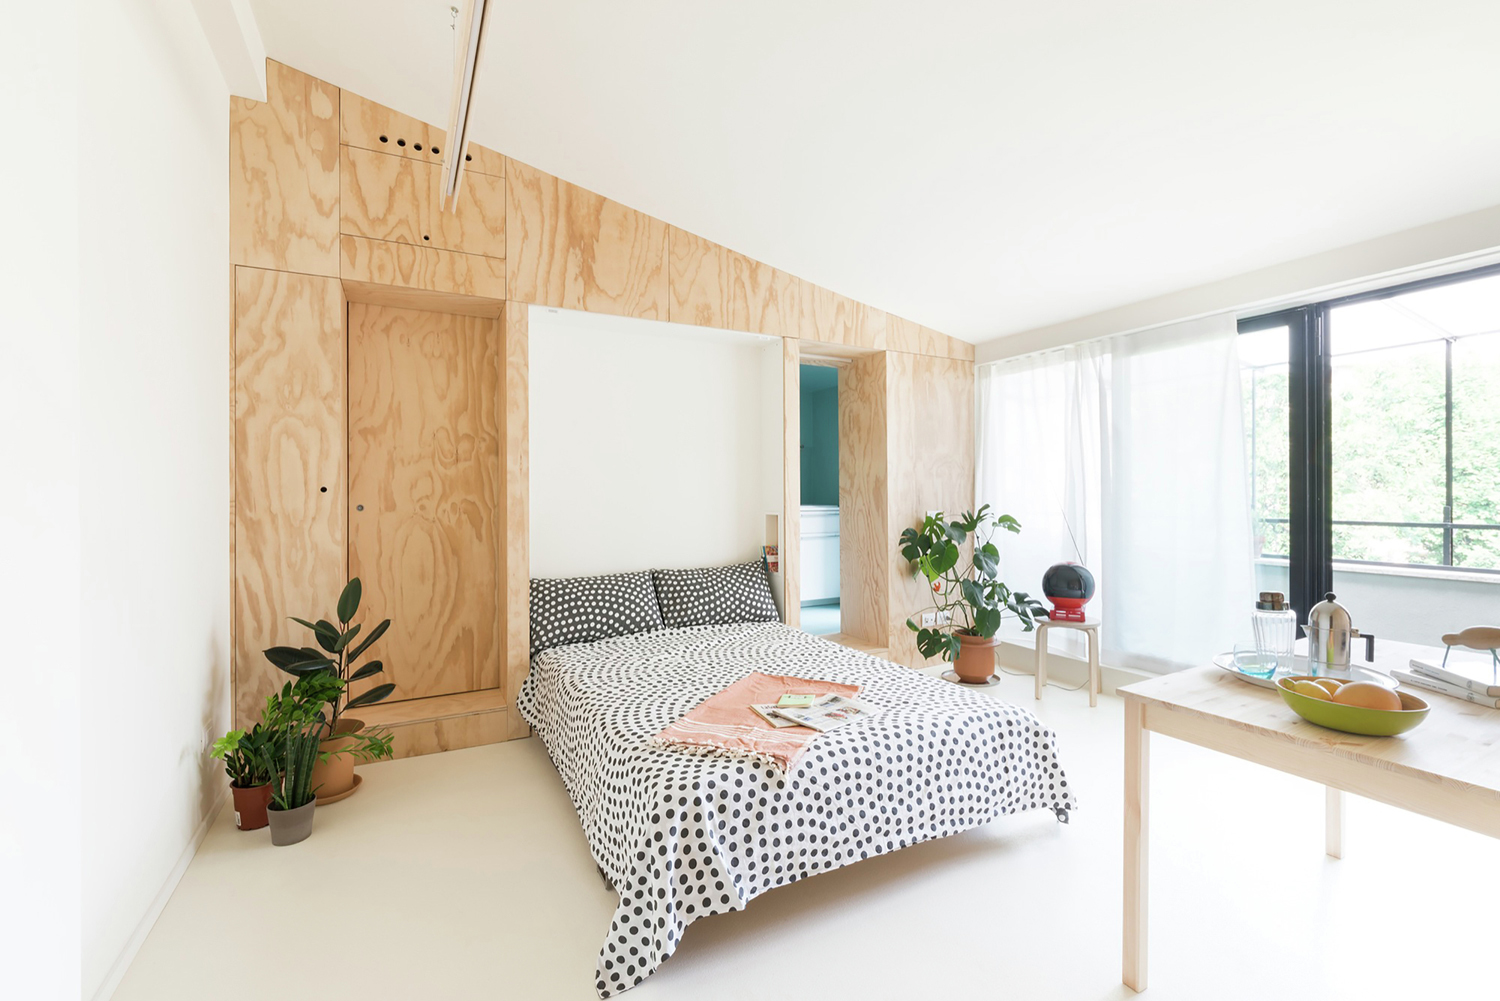 Studio Apartment Living. 300 Square Foot Tiny Studio Apartment With Flexible Living Space